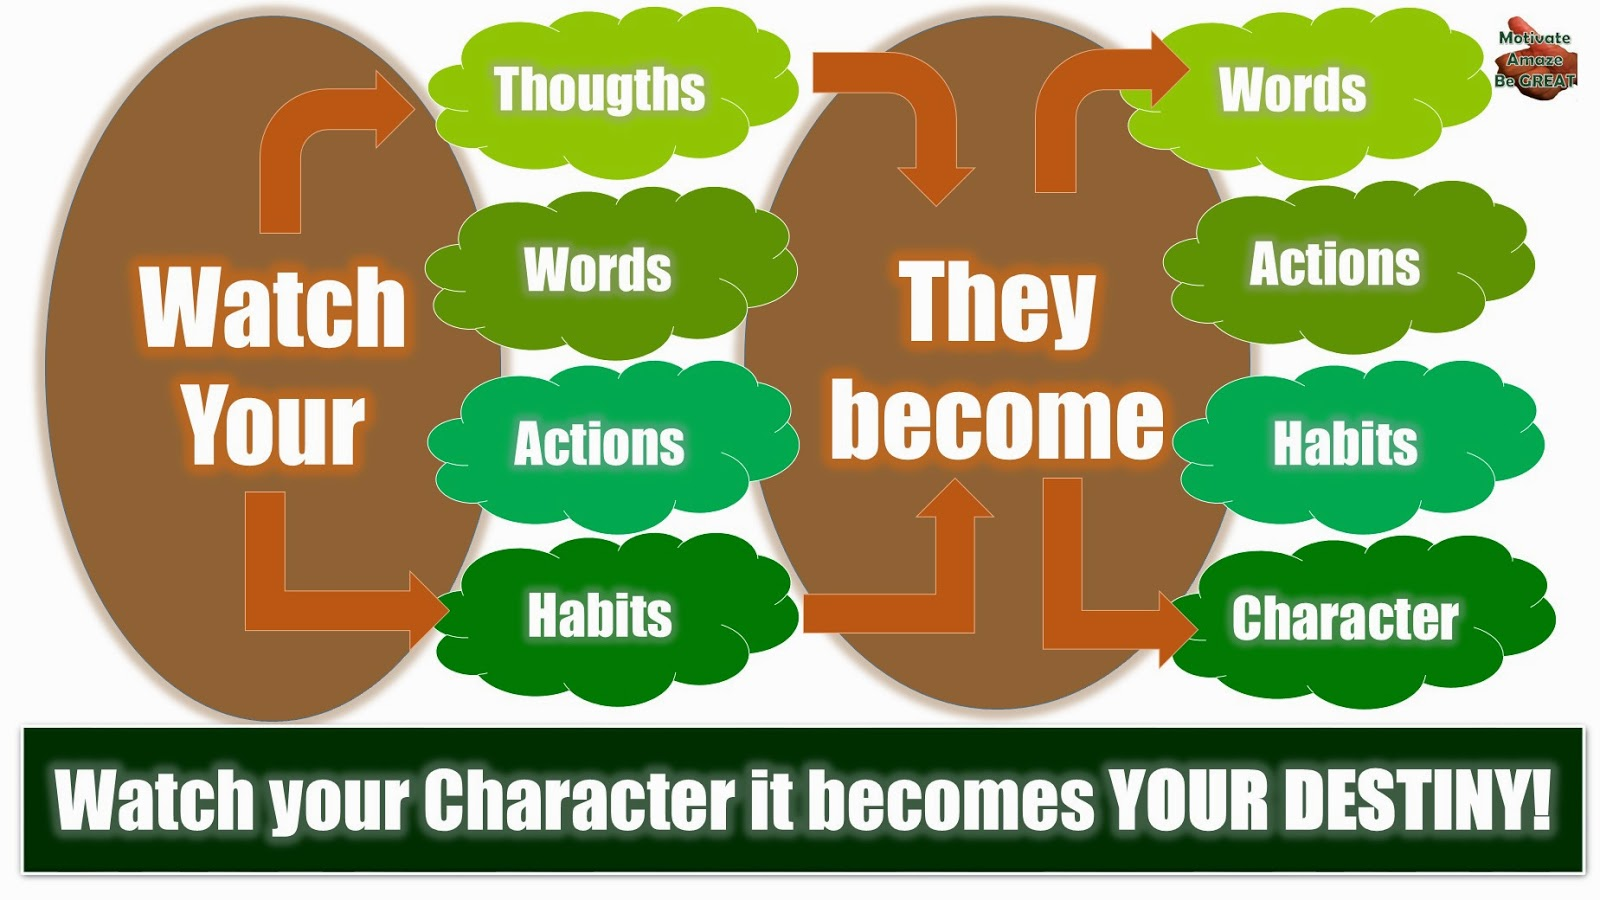 Destiny Cycle - Small Things Turn Into BIG Things, Personal Development, Self-Improvement, Success, Motivation, Destiny, Character, Habits, Actions, Words, Thoughts,